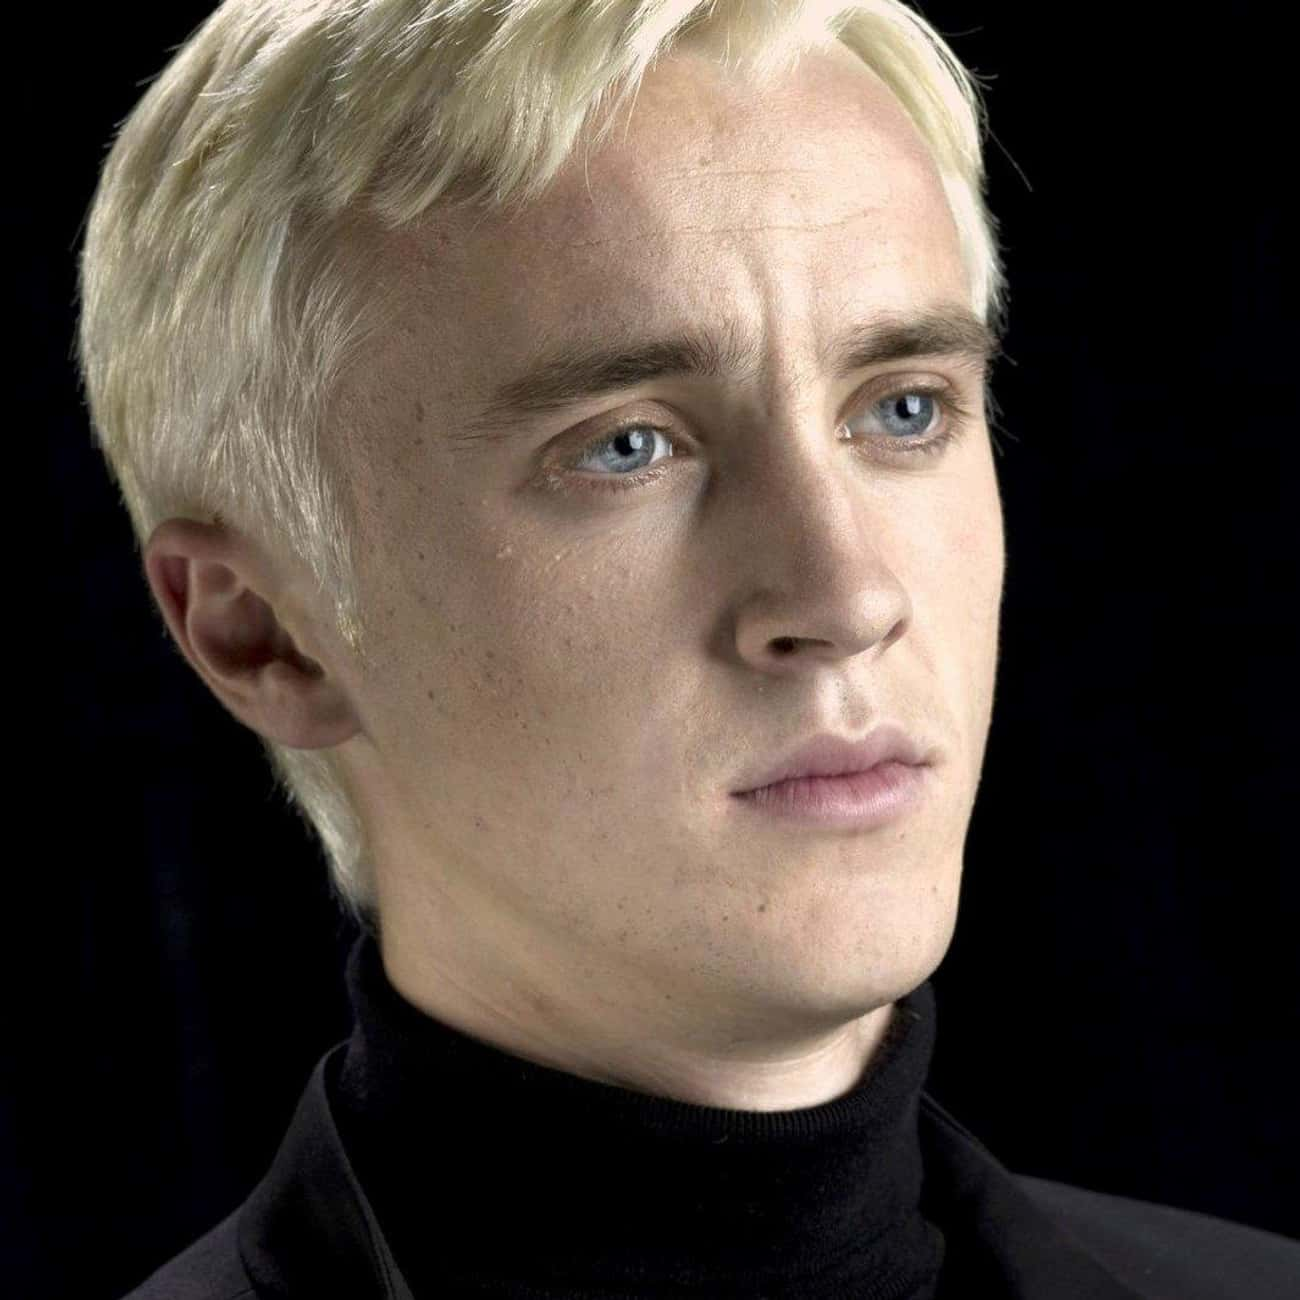 Draco Malfoy is listed (or ranked) 3 on the list The Best Members of Slytherin